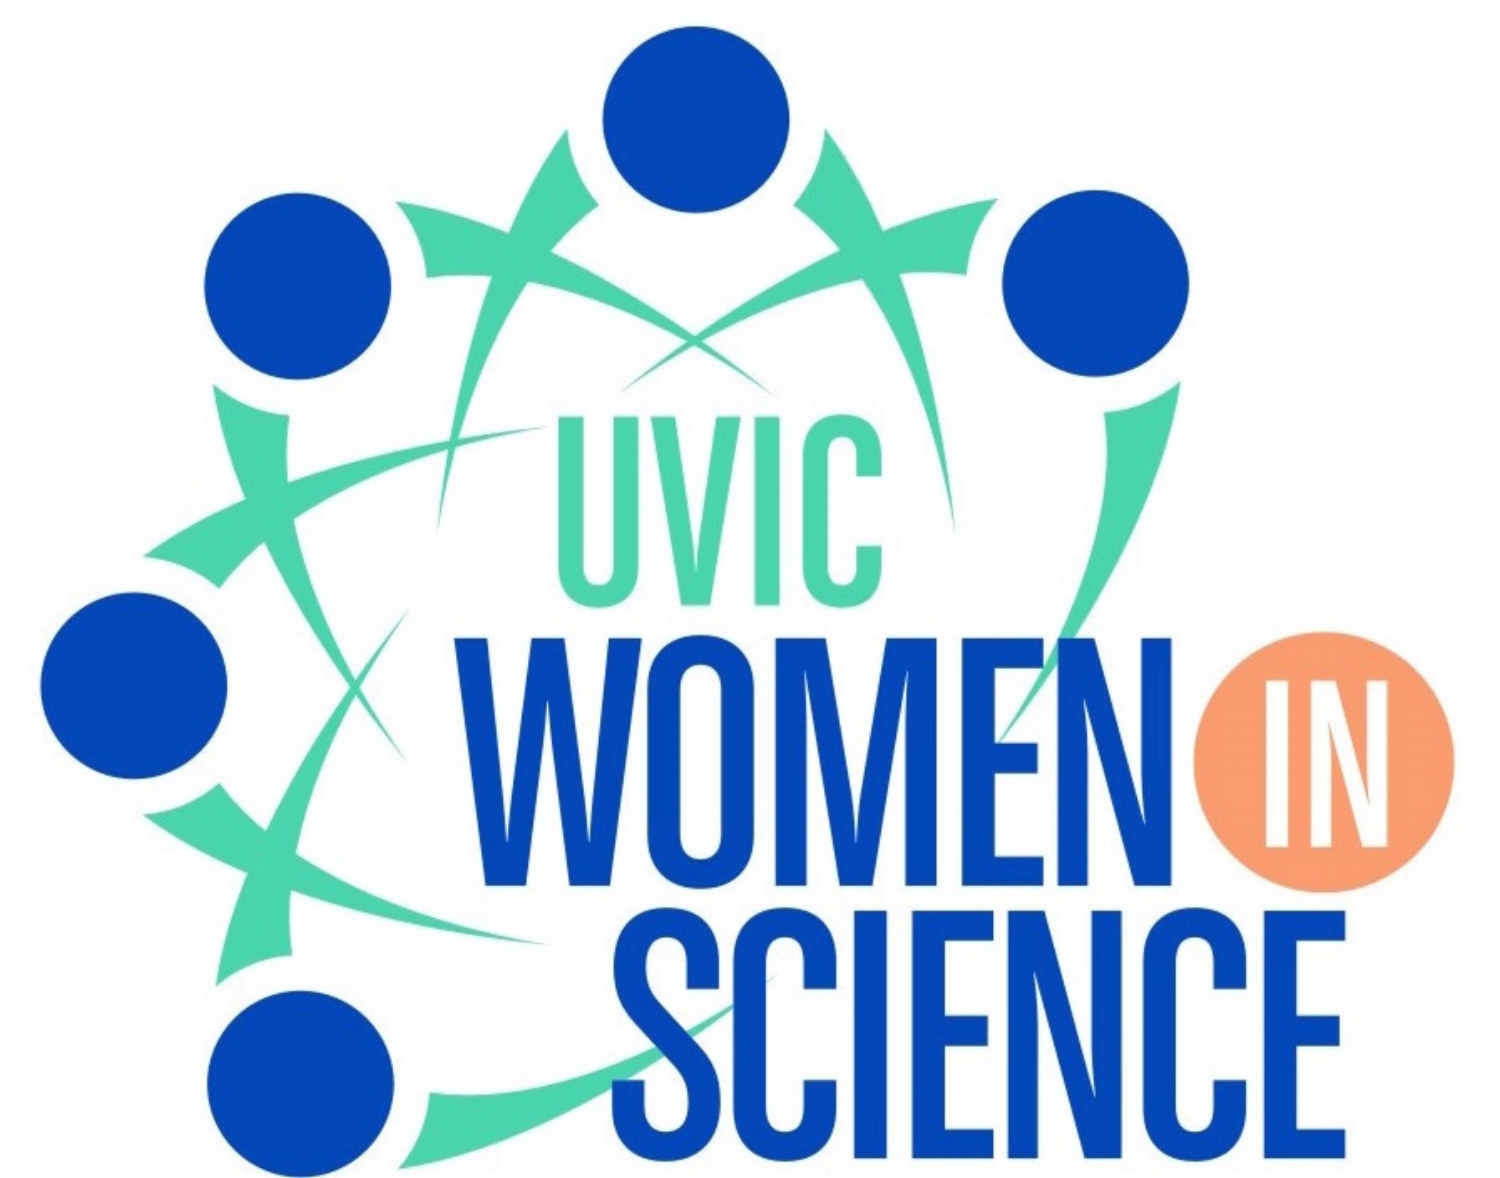 UVic Women in Science